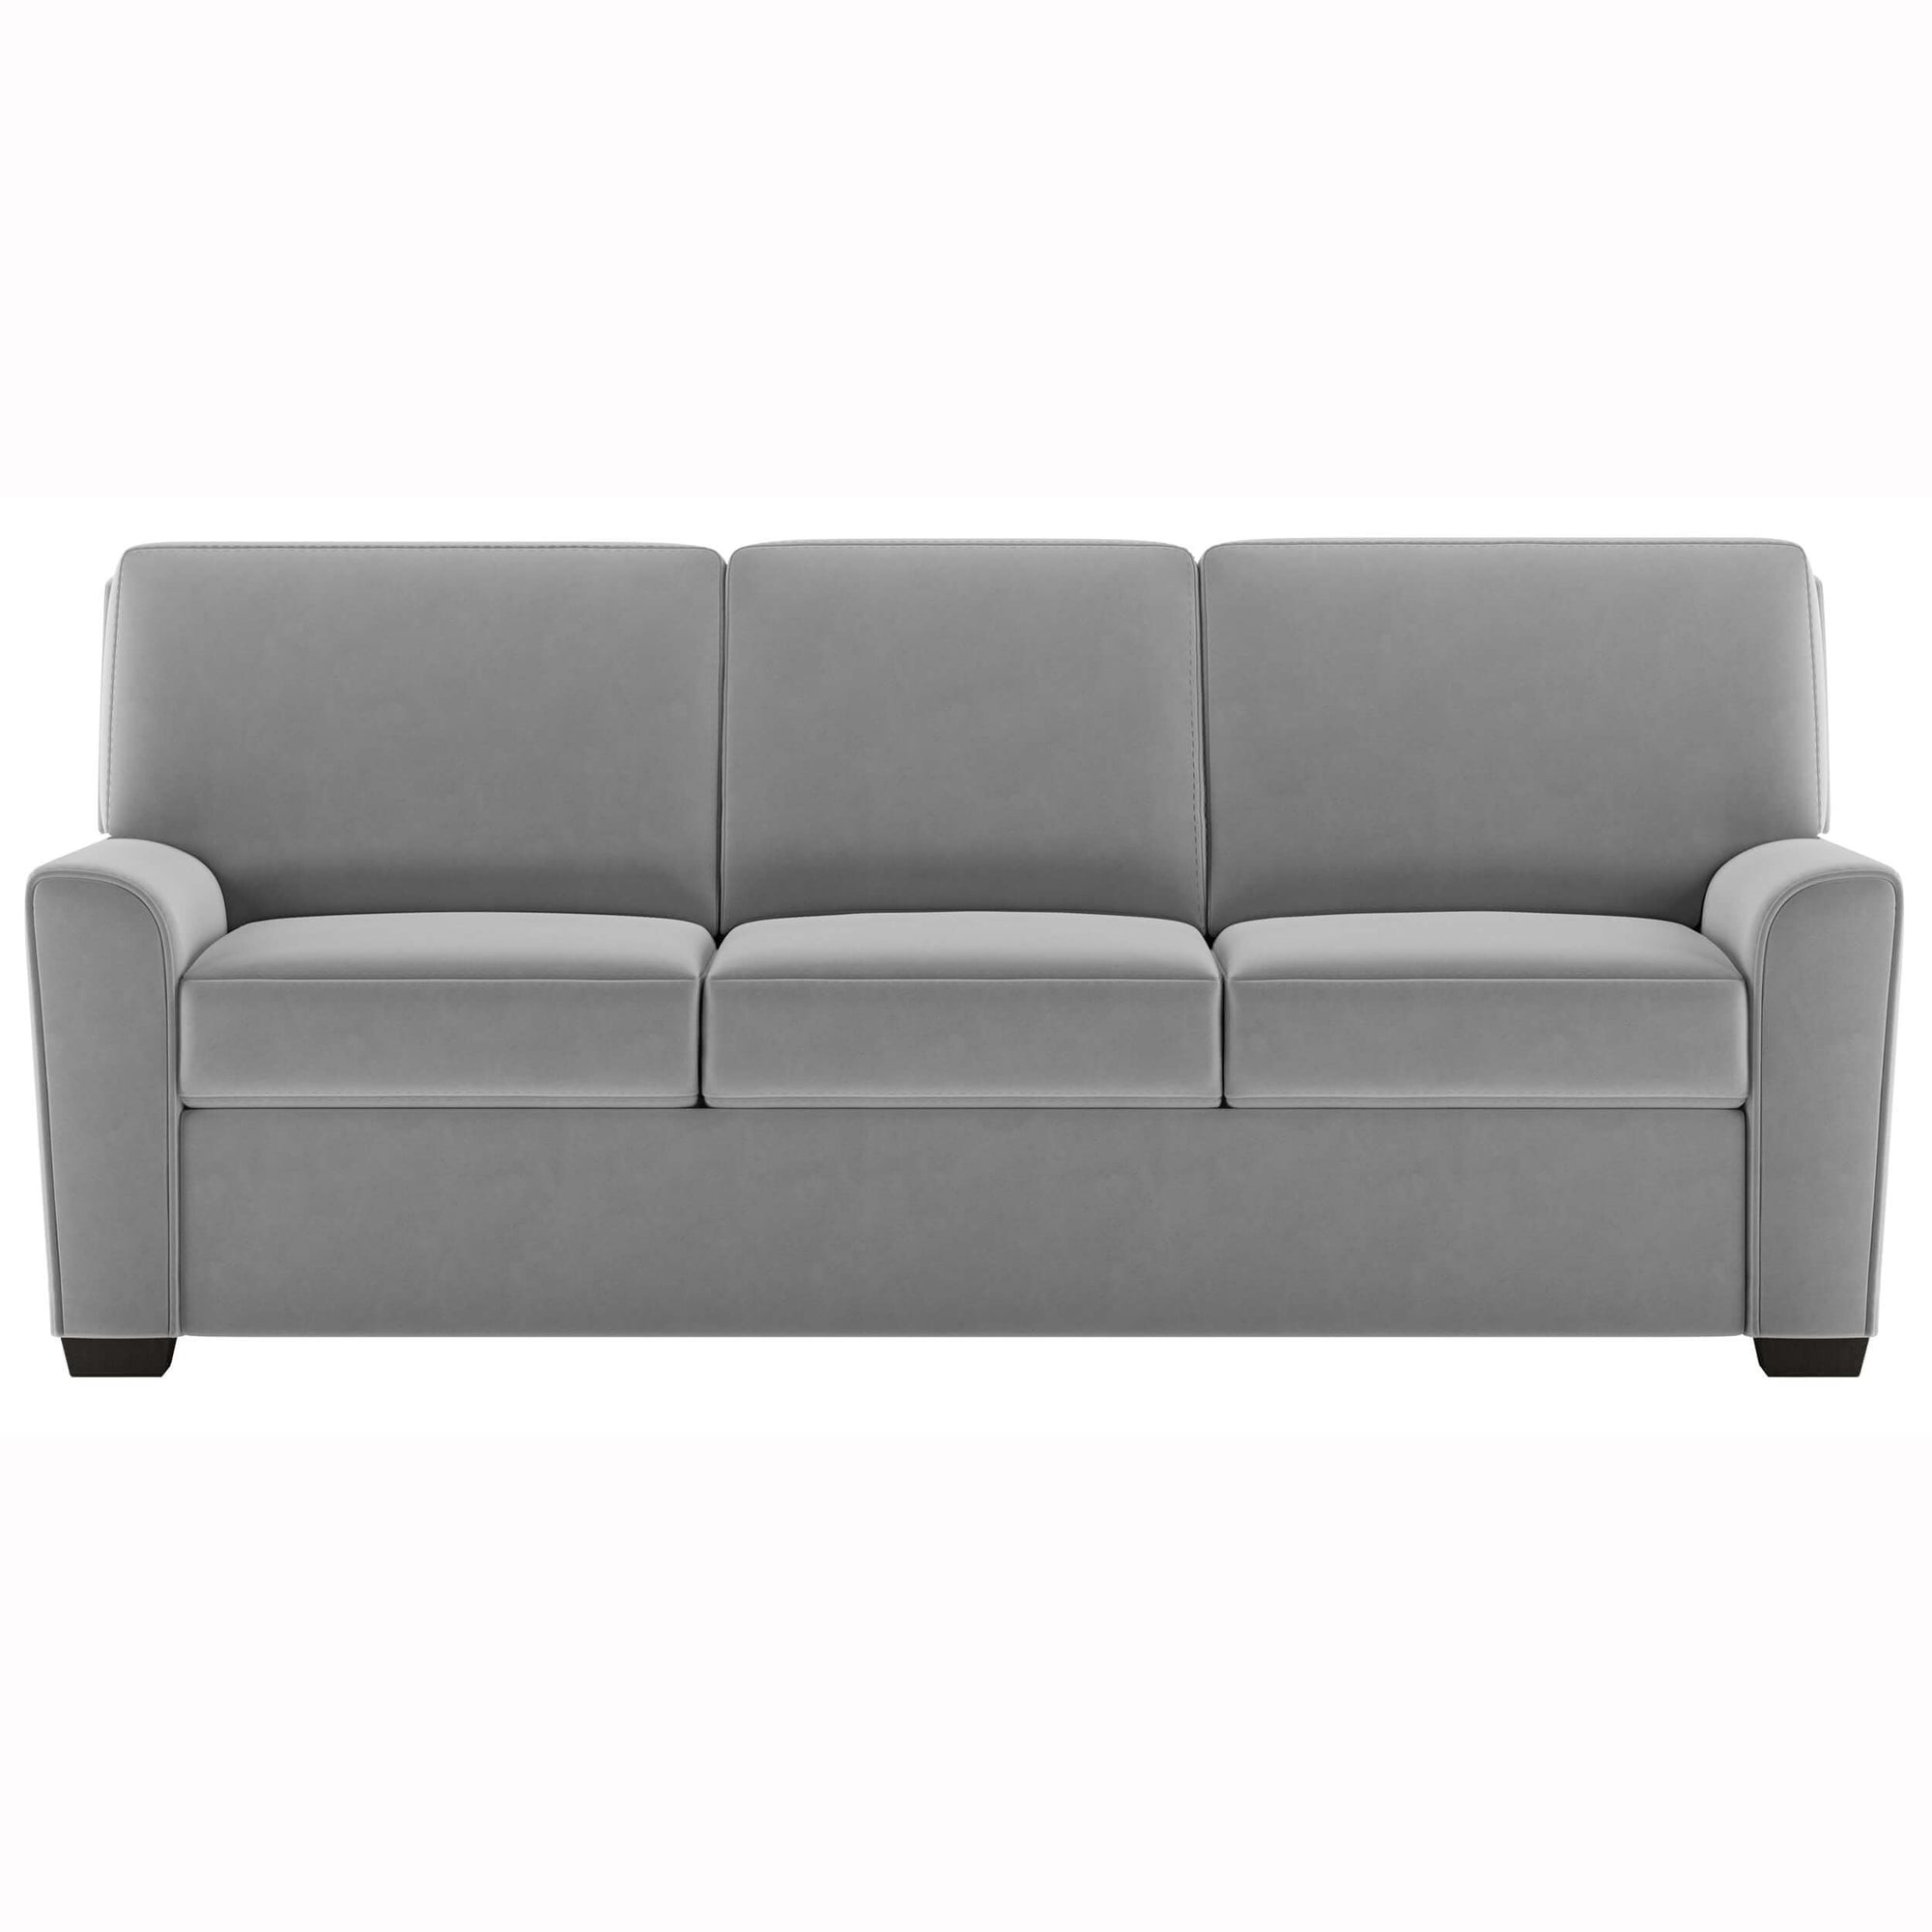 Amazing American Leather Klein Queen Sleeper Sofa Toray Ultrasuede French Gray Ocoug Best Dining Table And Chair Ideas Images Ocougorg